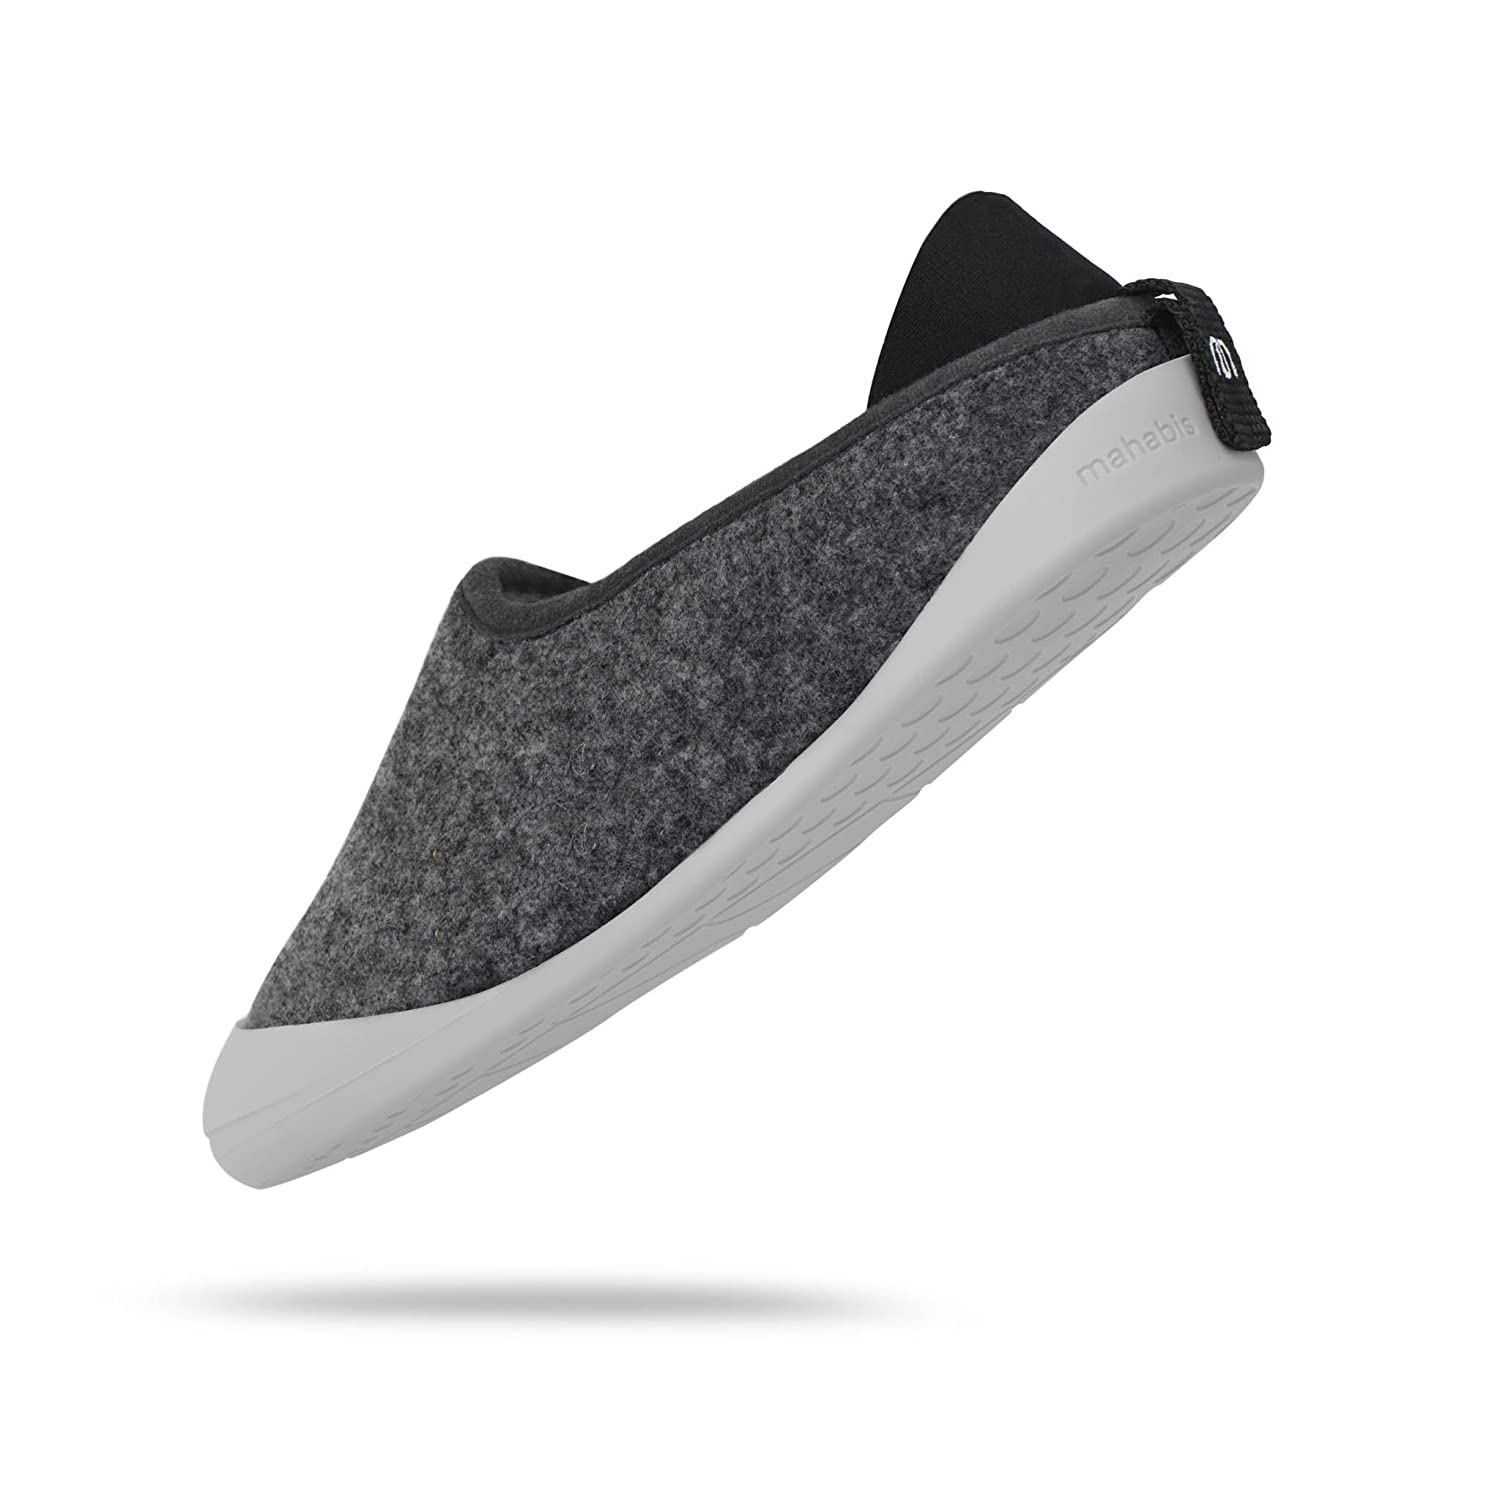 mahabis Larvik Dark Grey Summer Zapatillas con Suela Larvik Light Grey EN Talla 45 EU